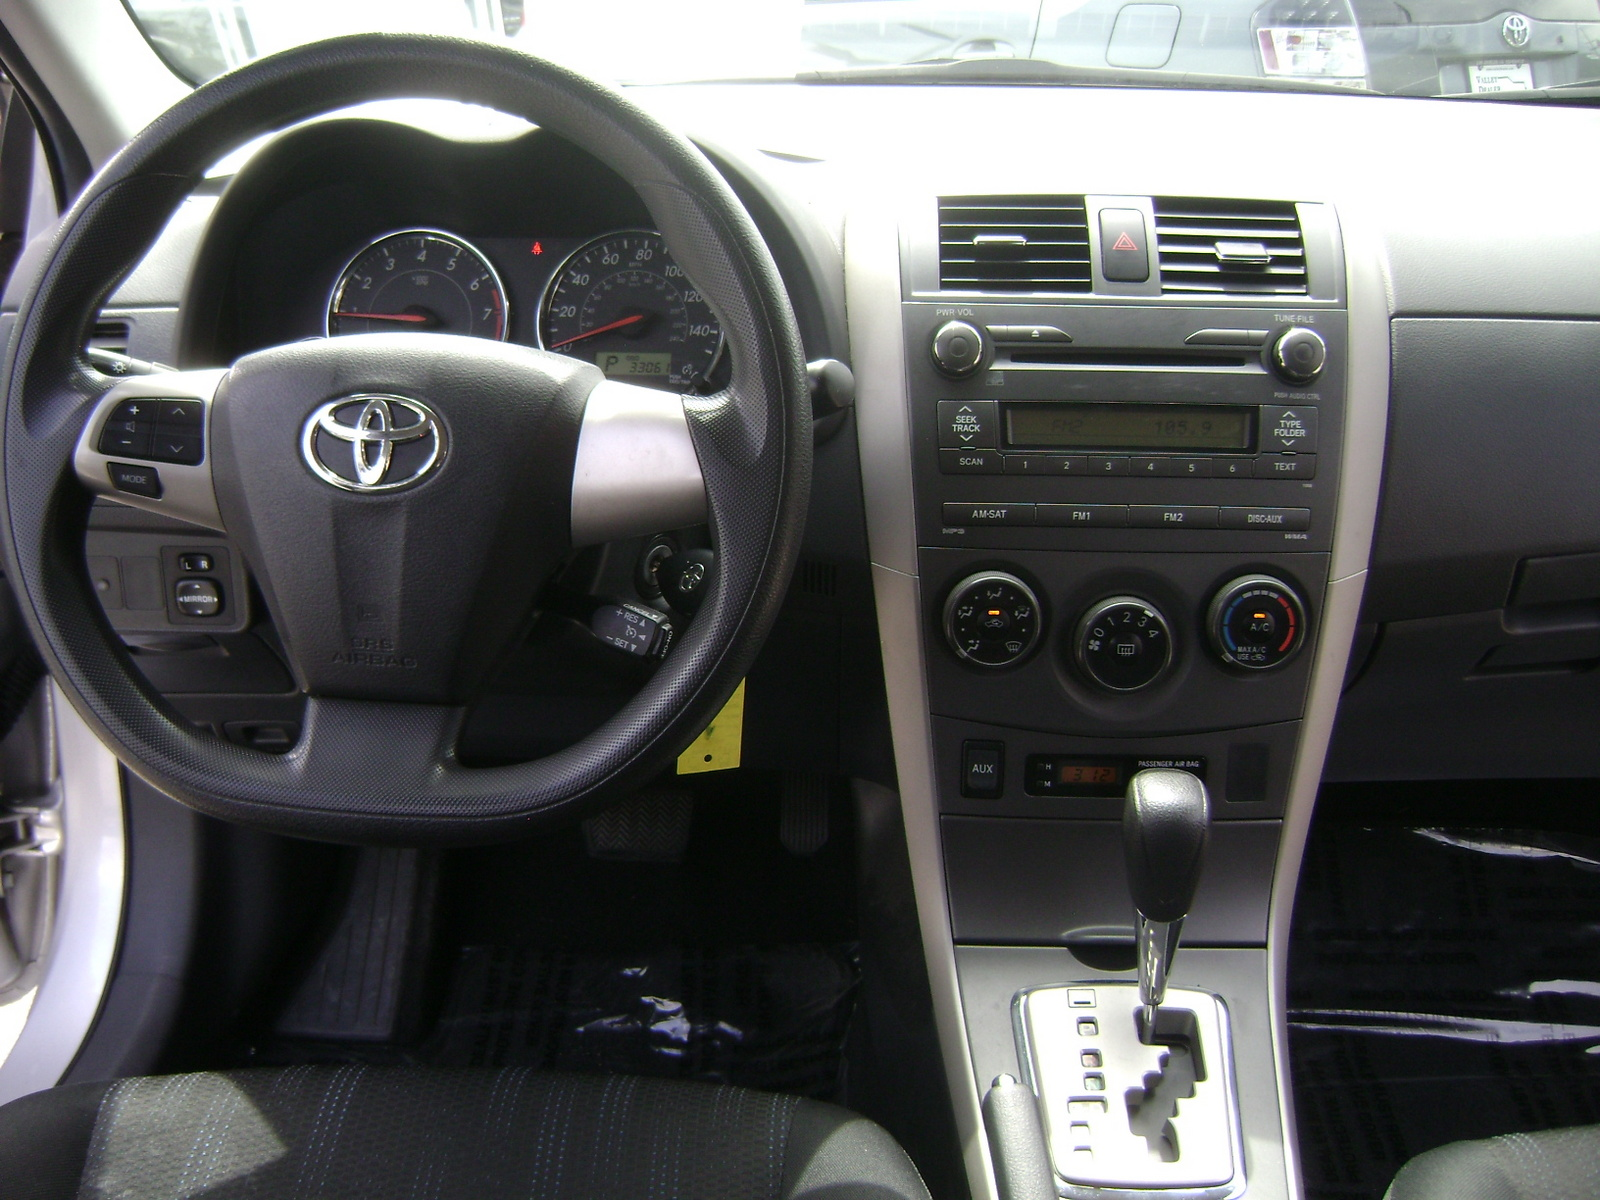 2011 toyota corolla interior the image for Interior toyota corolla